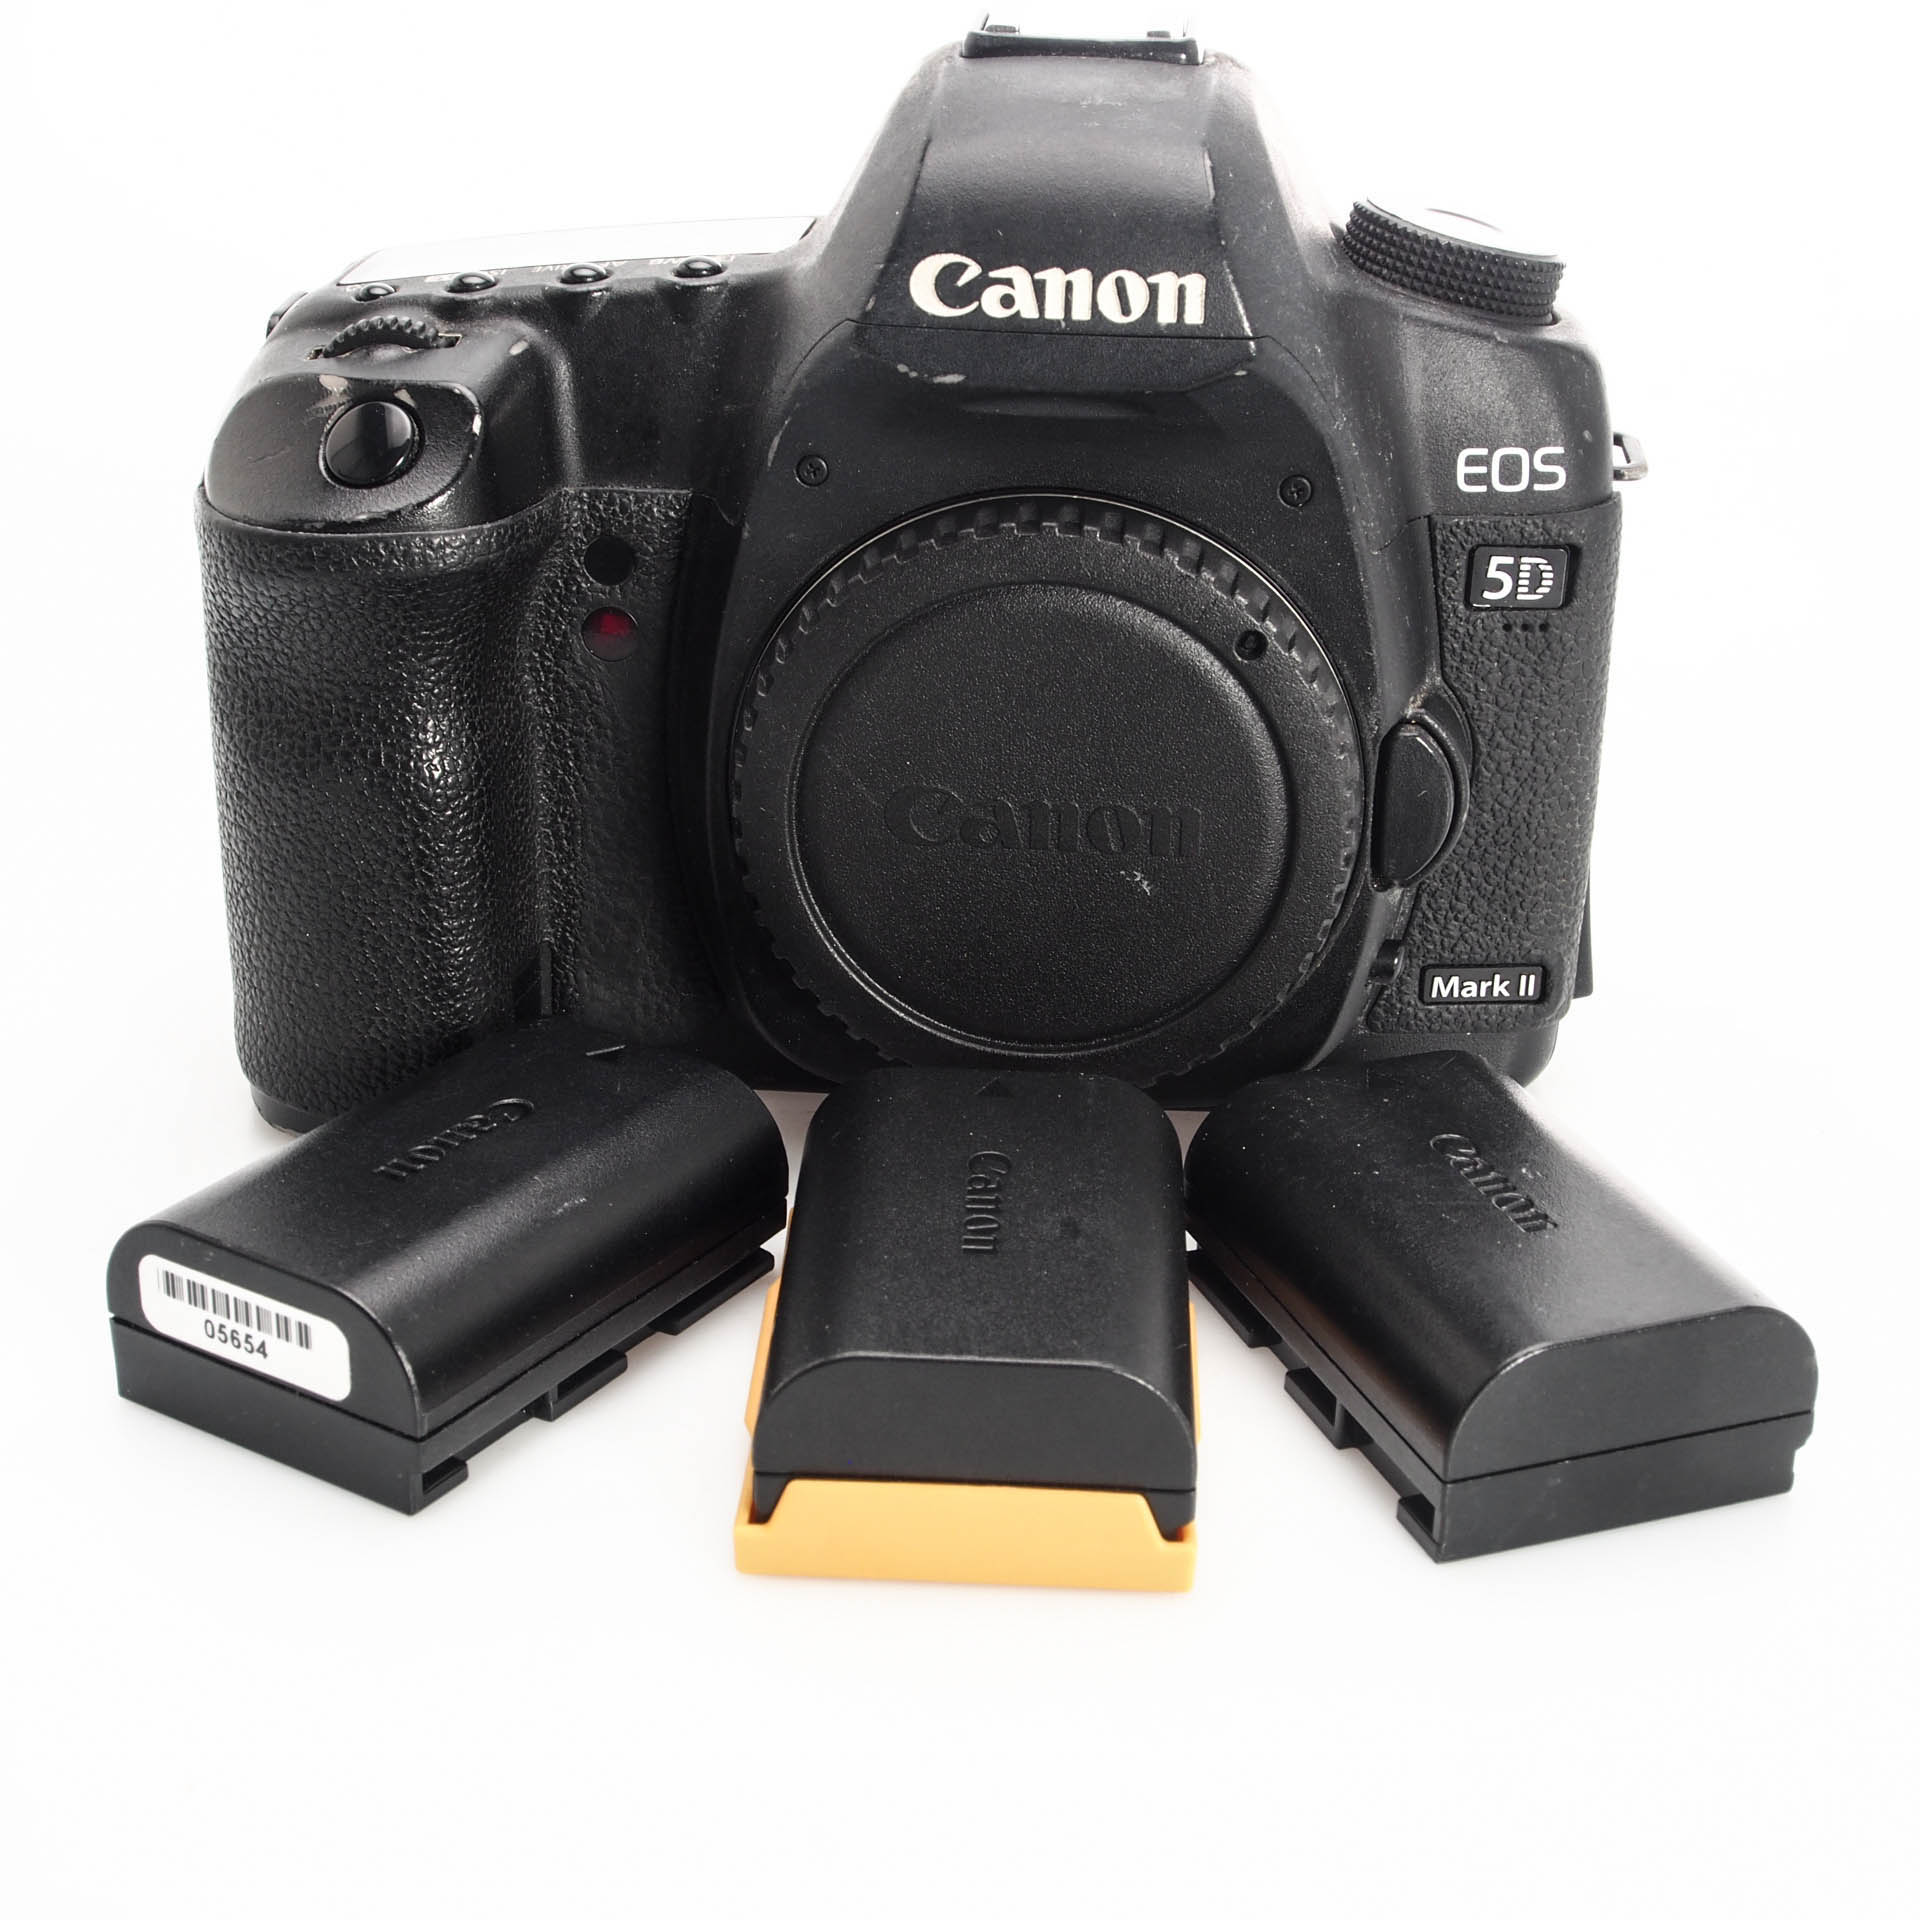 Camera Dslr Used Cameras For Sale used cameras dslrs national camera exchange canon eos 5d mark ii 21 1mp digital slr body only heavy use 2764b003 condition poor